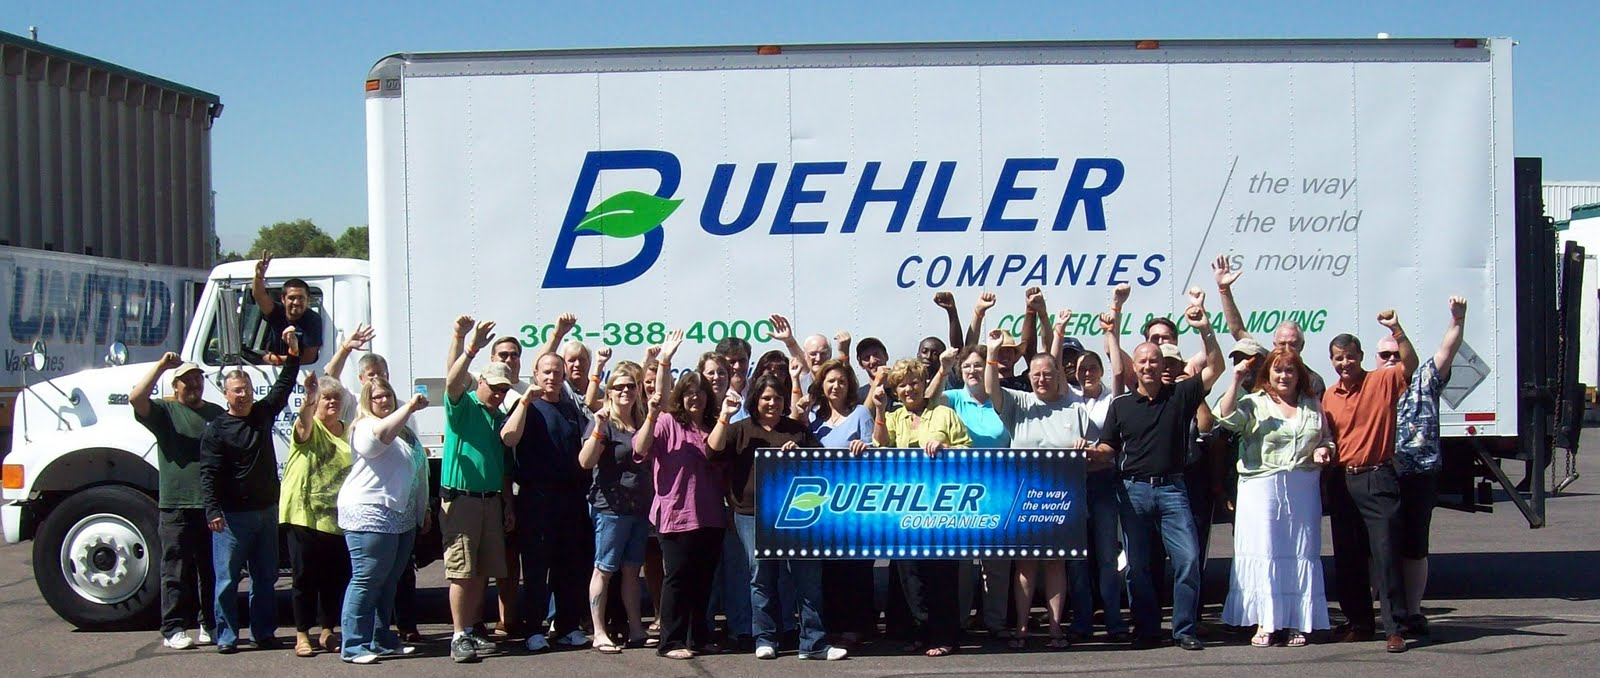 Buehler Moving Companies Picture